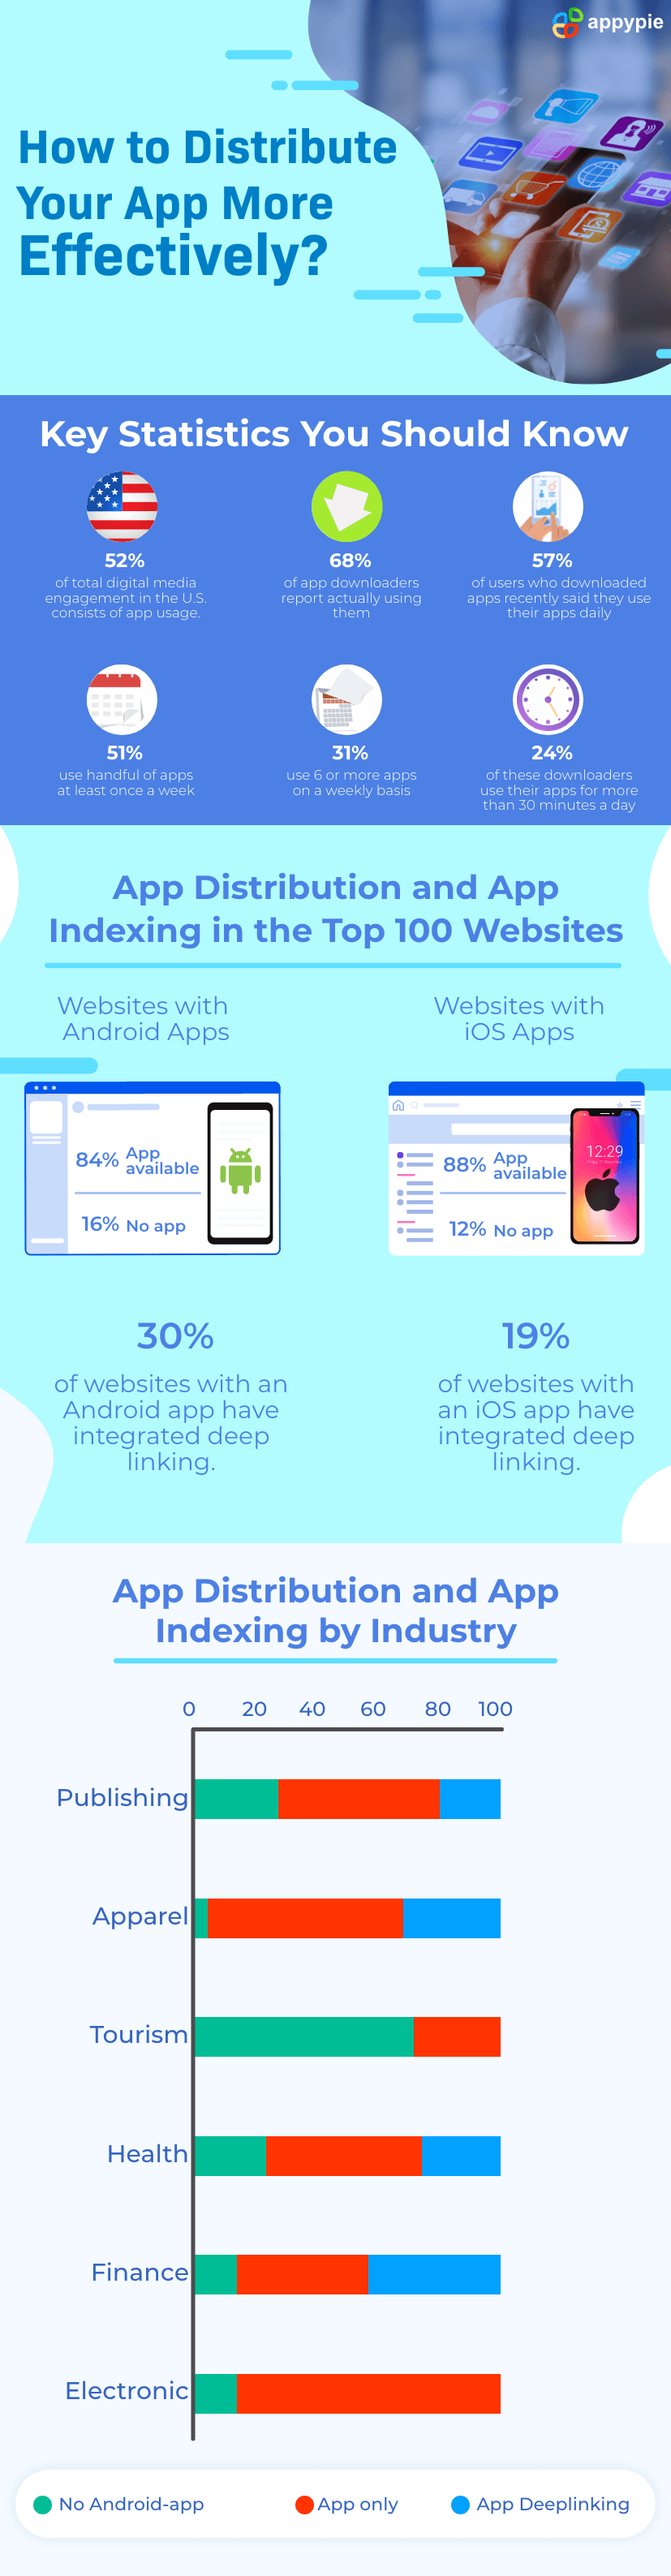 How to Distribute Your App More Effectively - Appy Pie